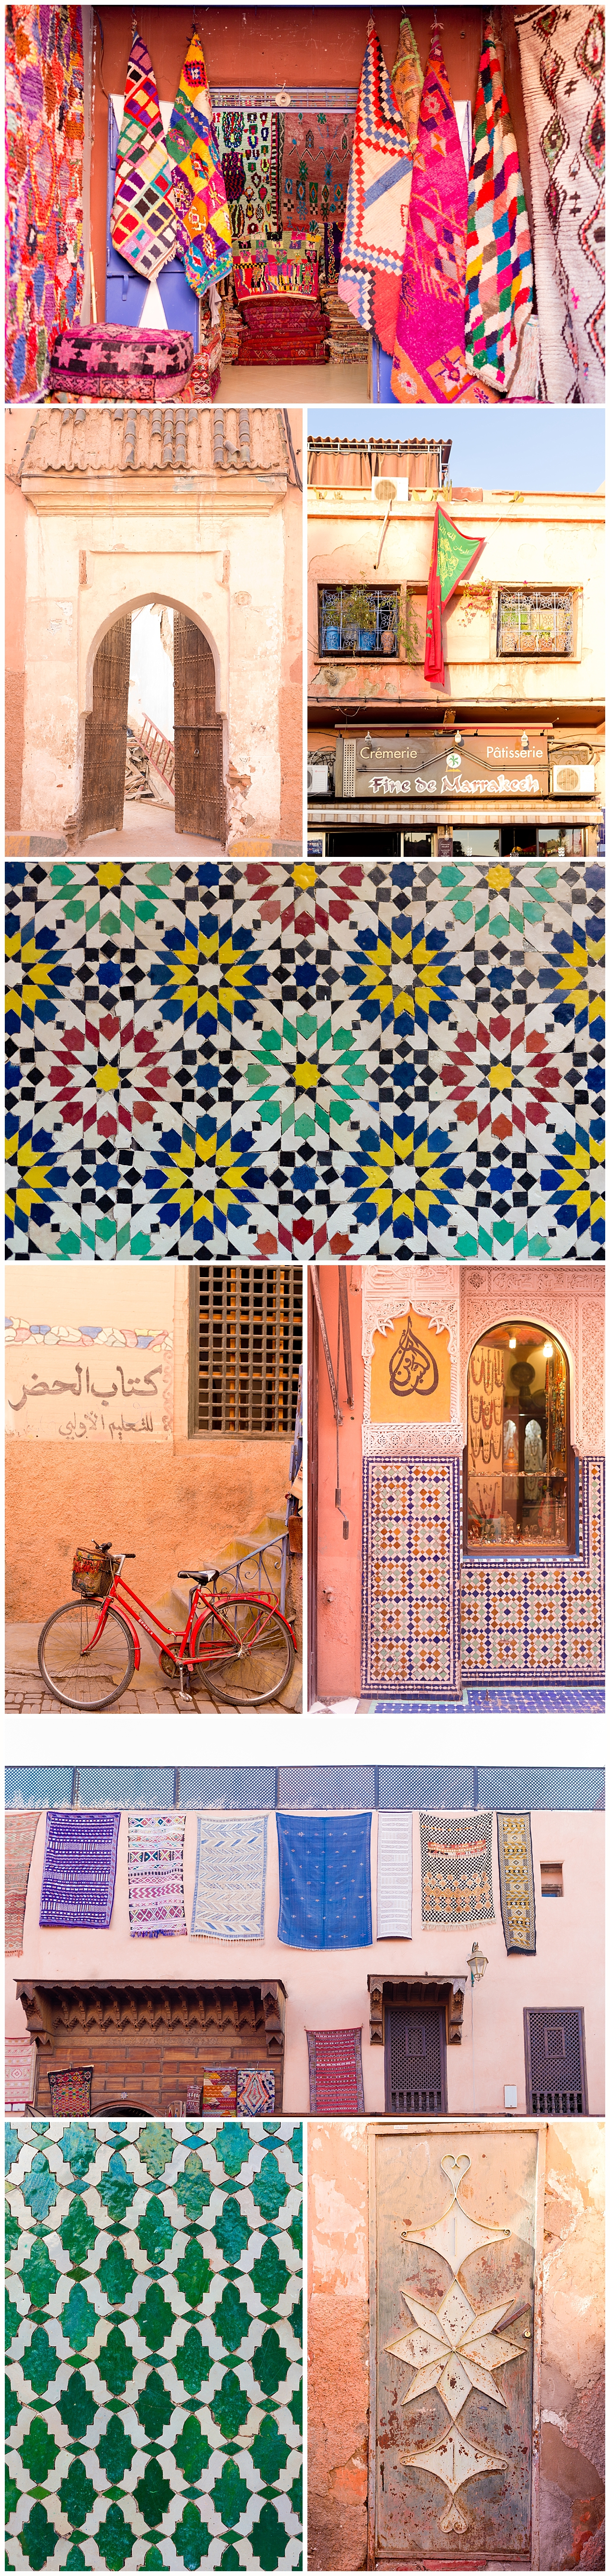 colorful architectural and artistic details in Marrakech, Morocco